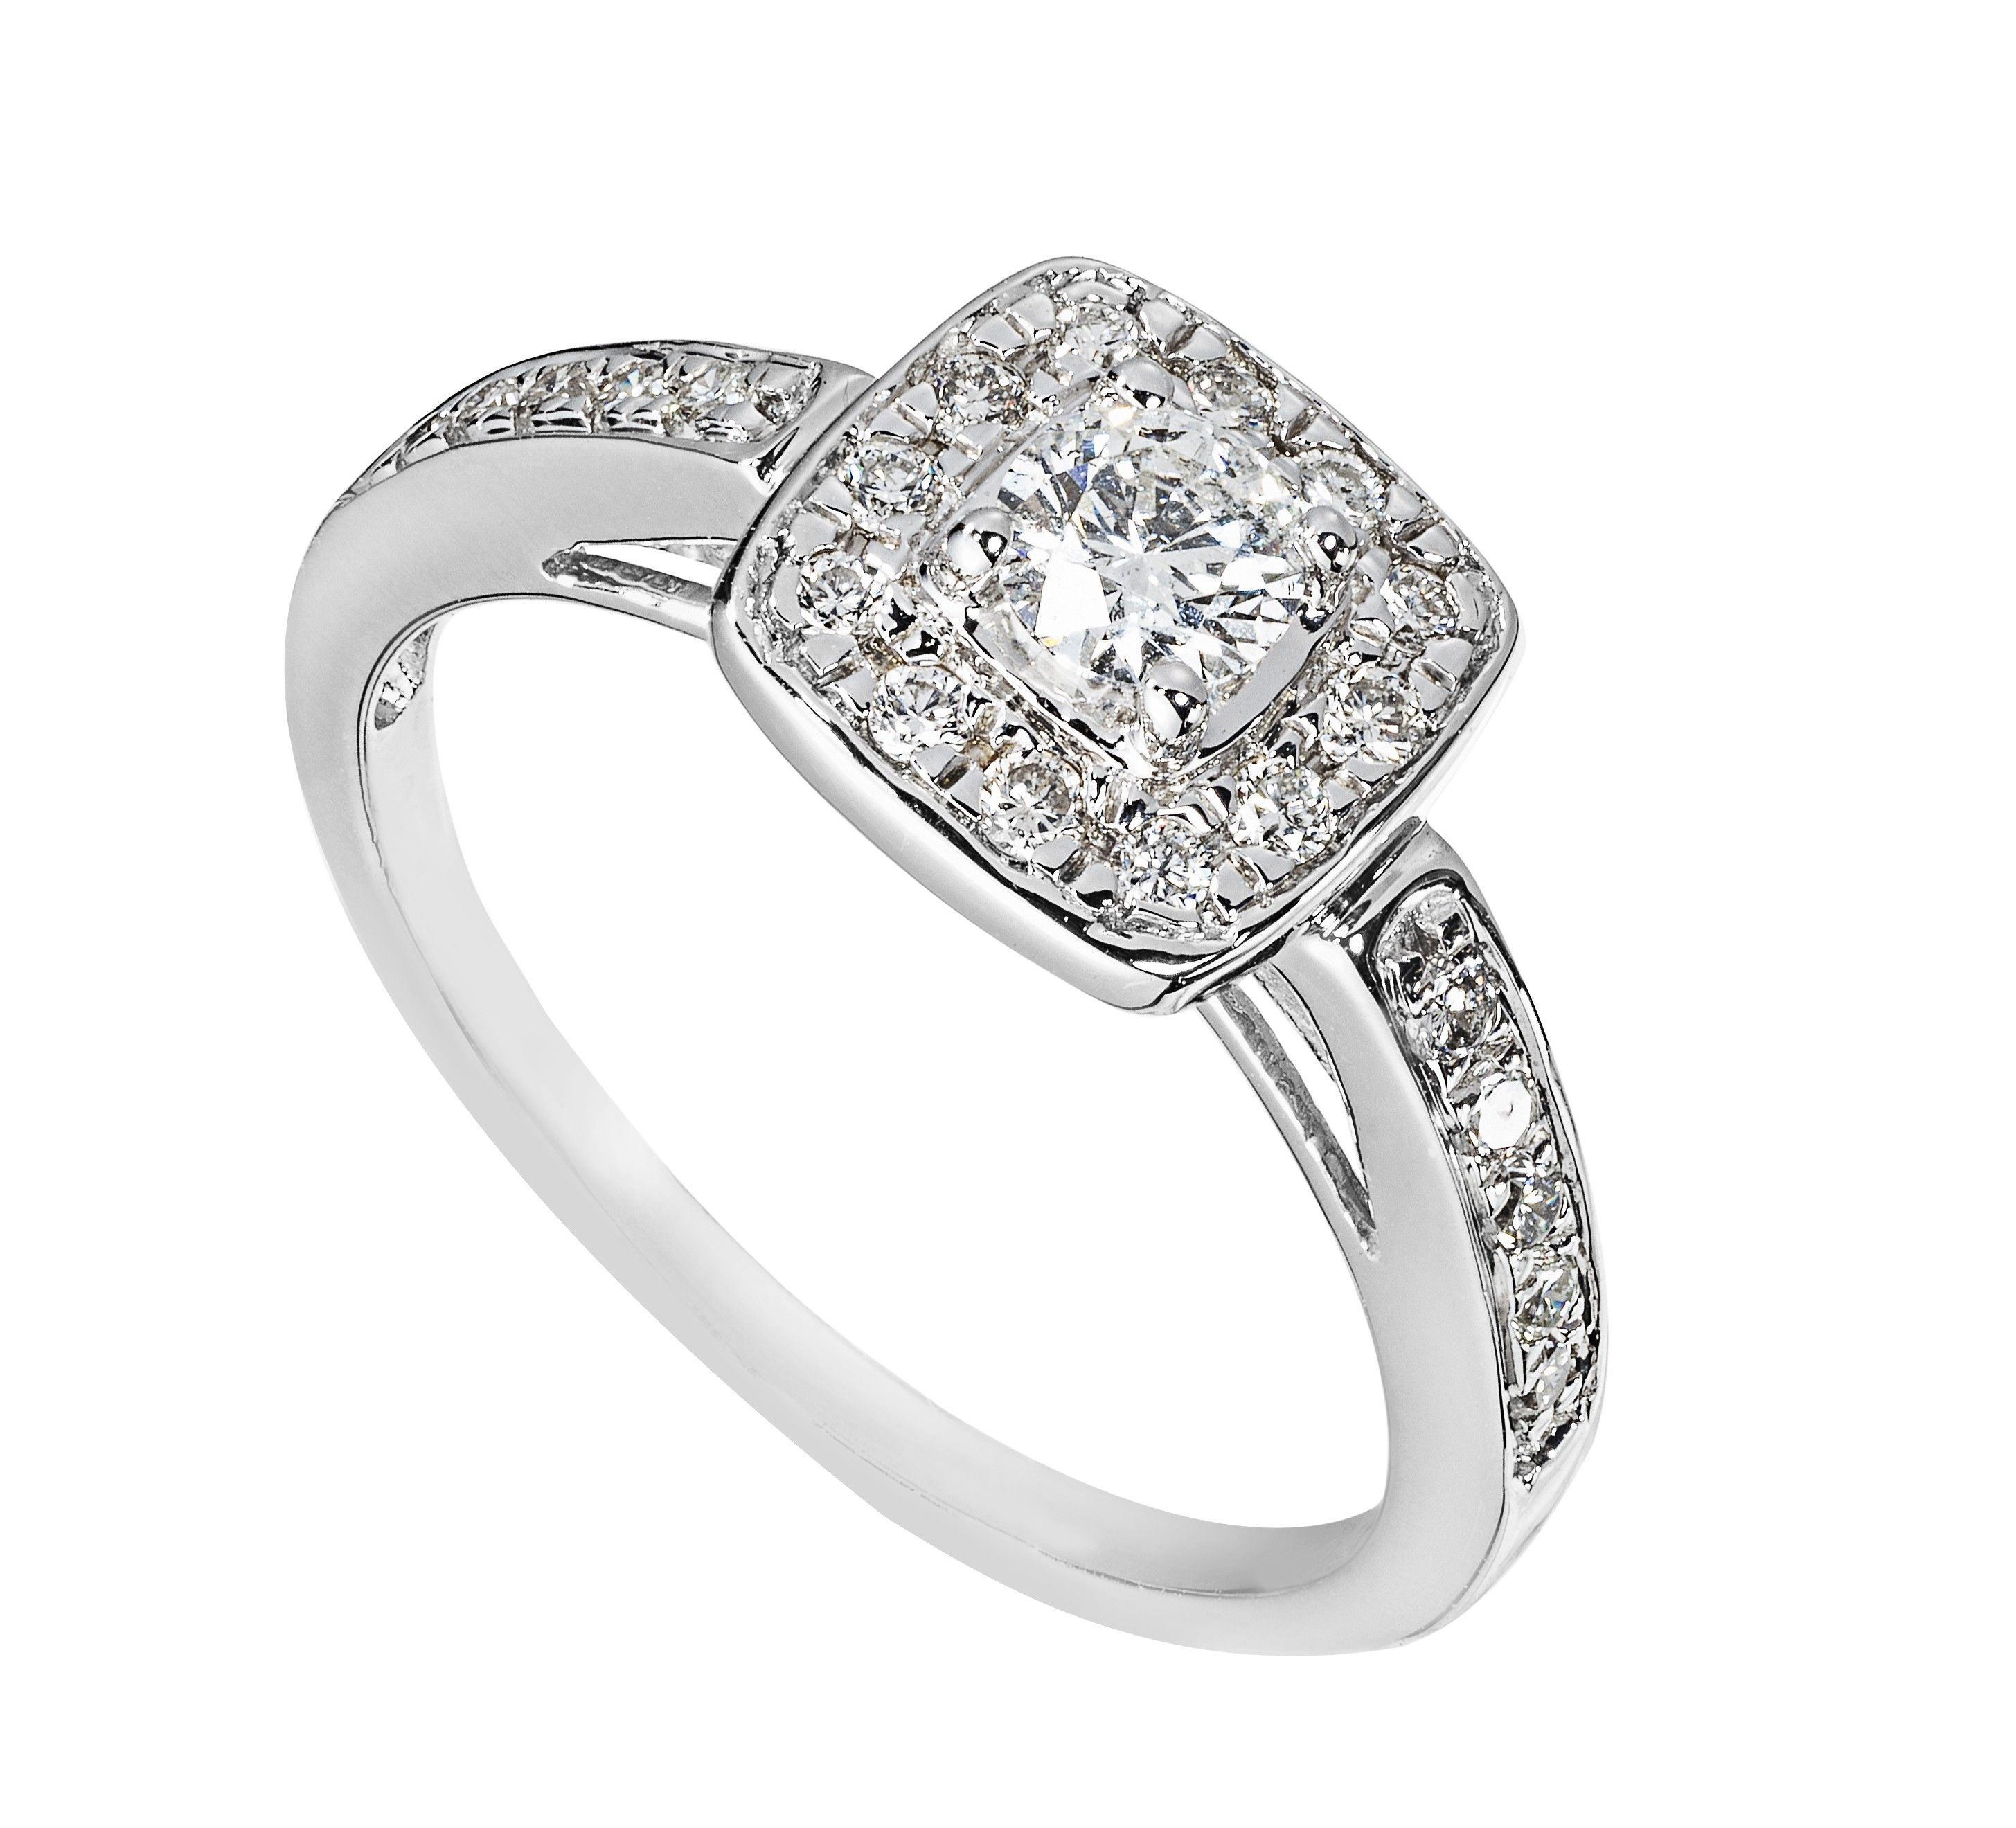 9ct white gold 0.50 carat diamond halo ring | Fraser Hart Jewellers